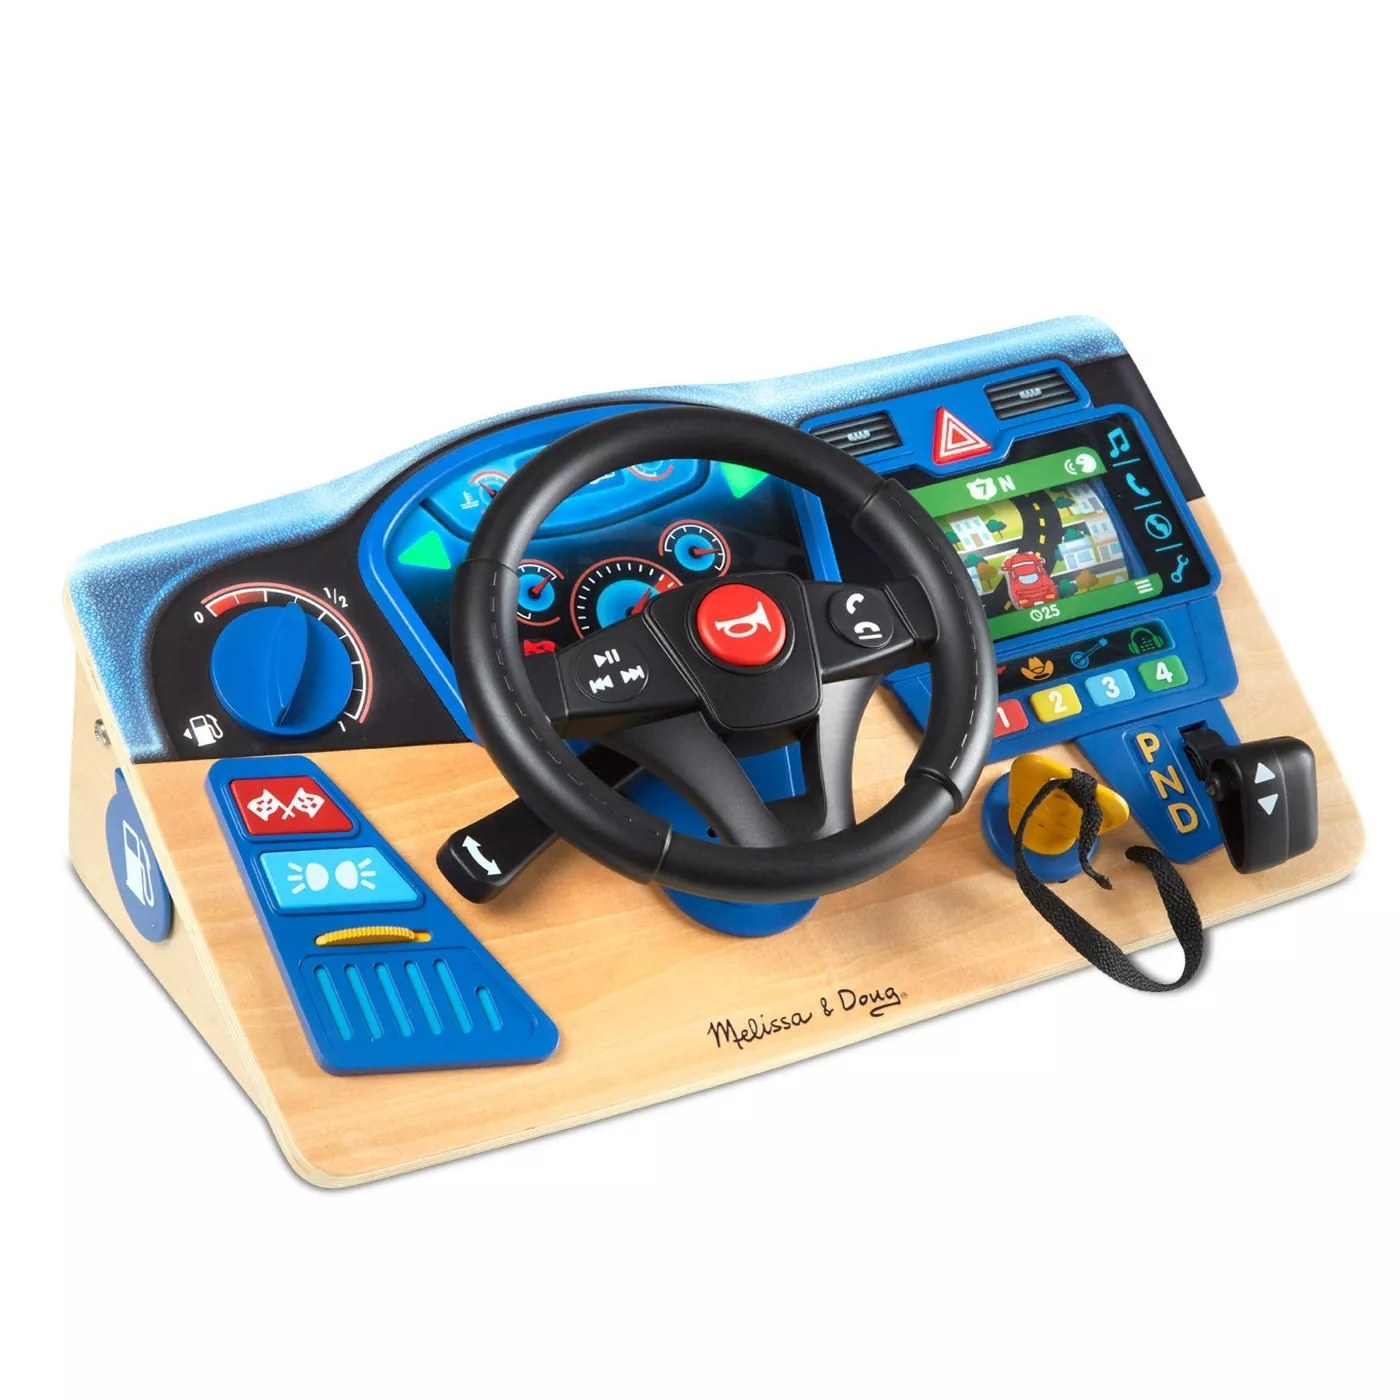 The driving dashboard